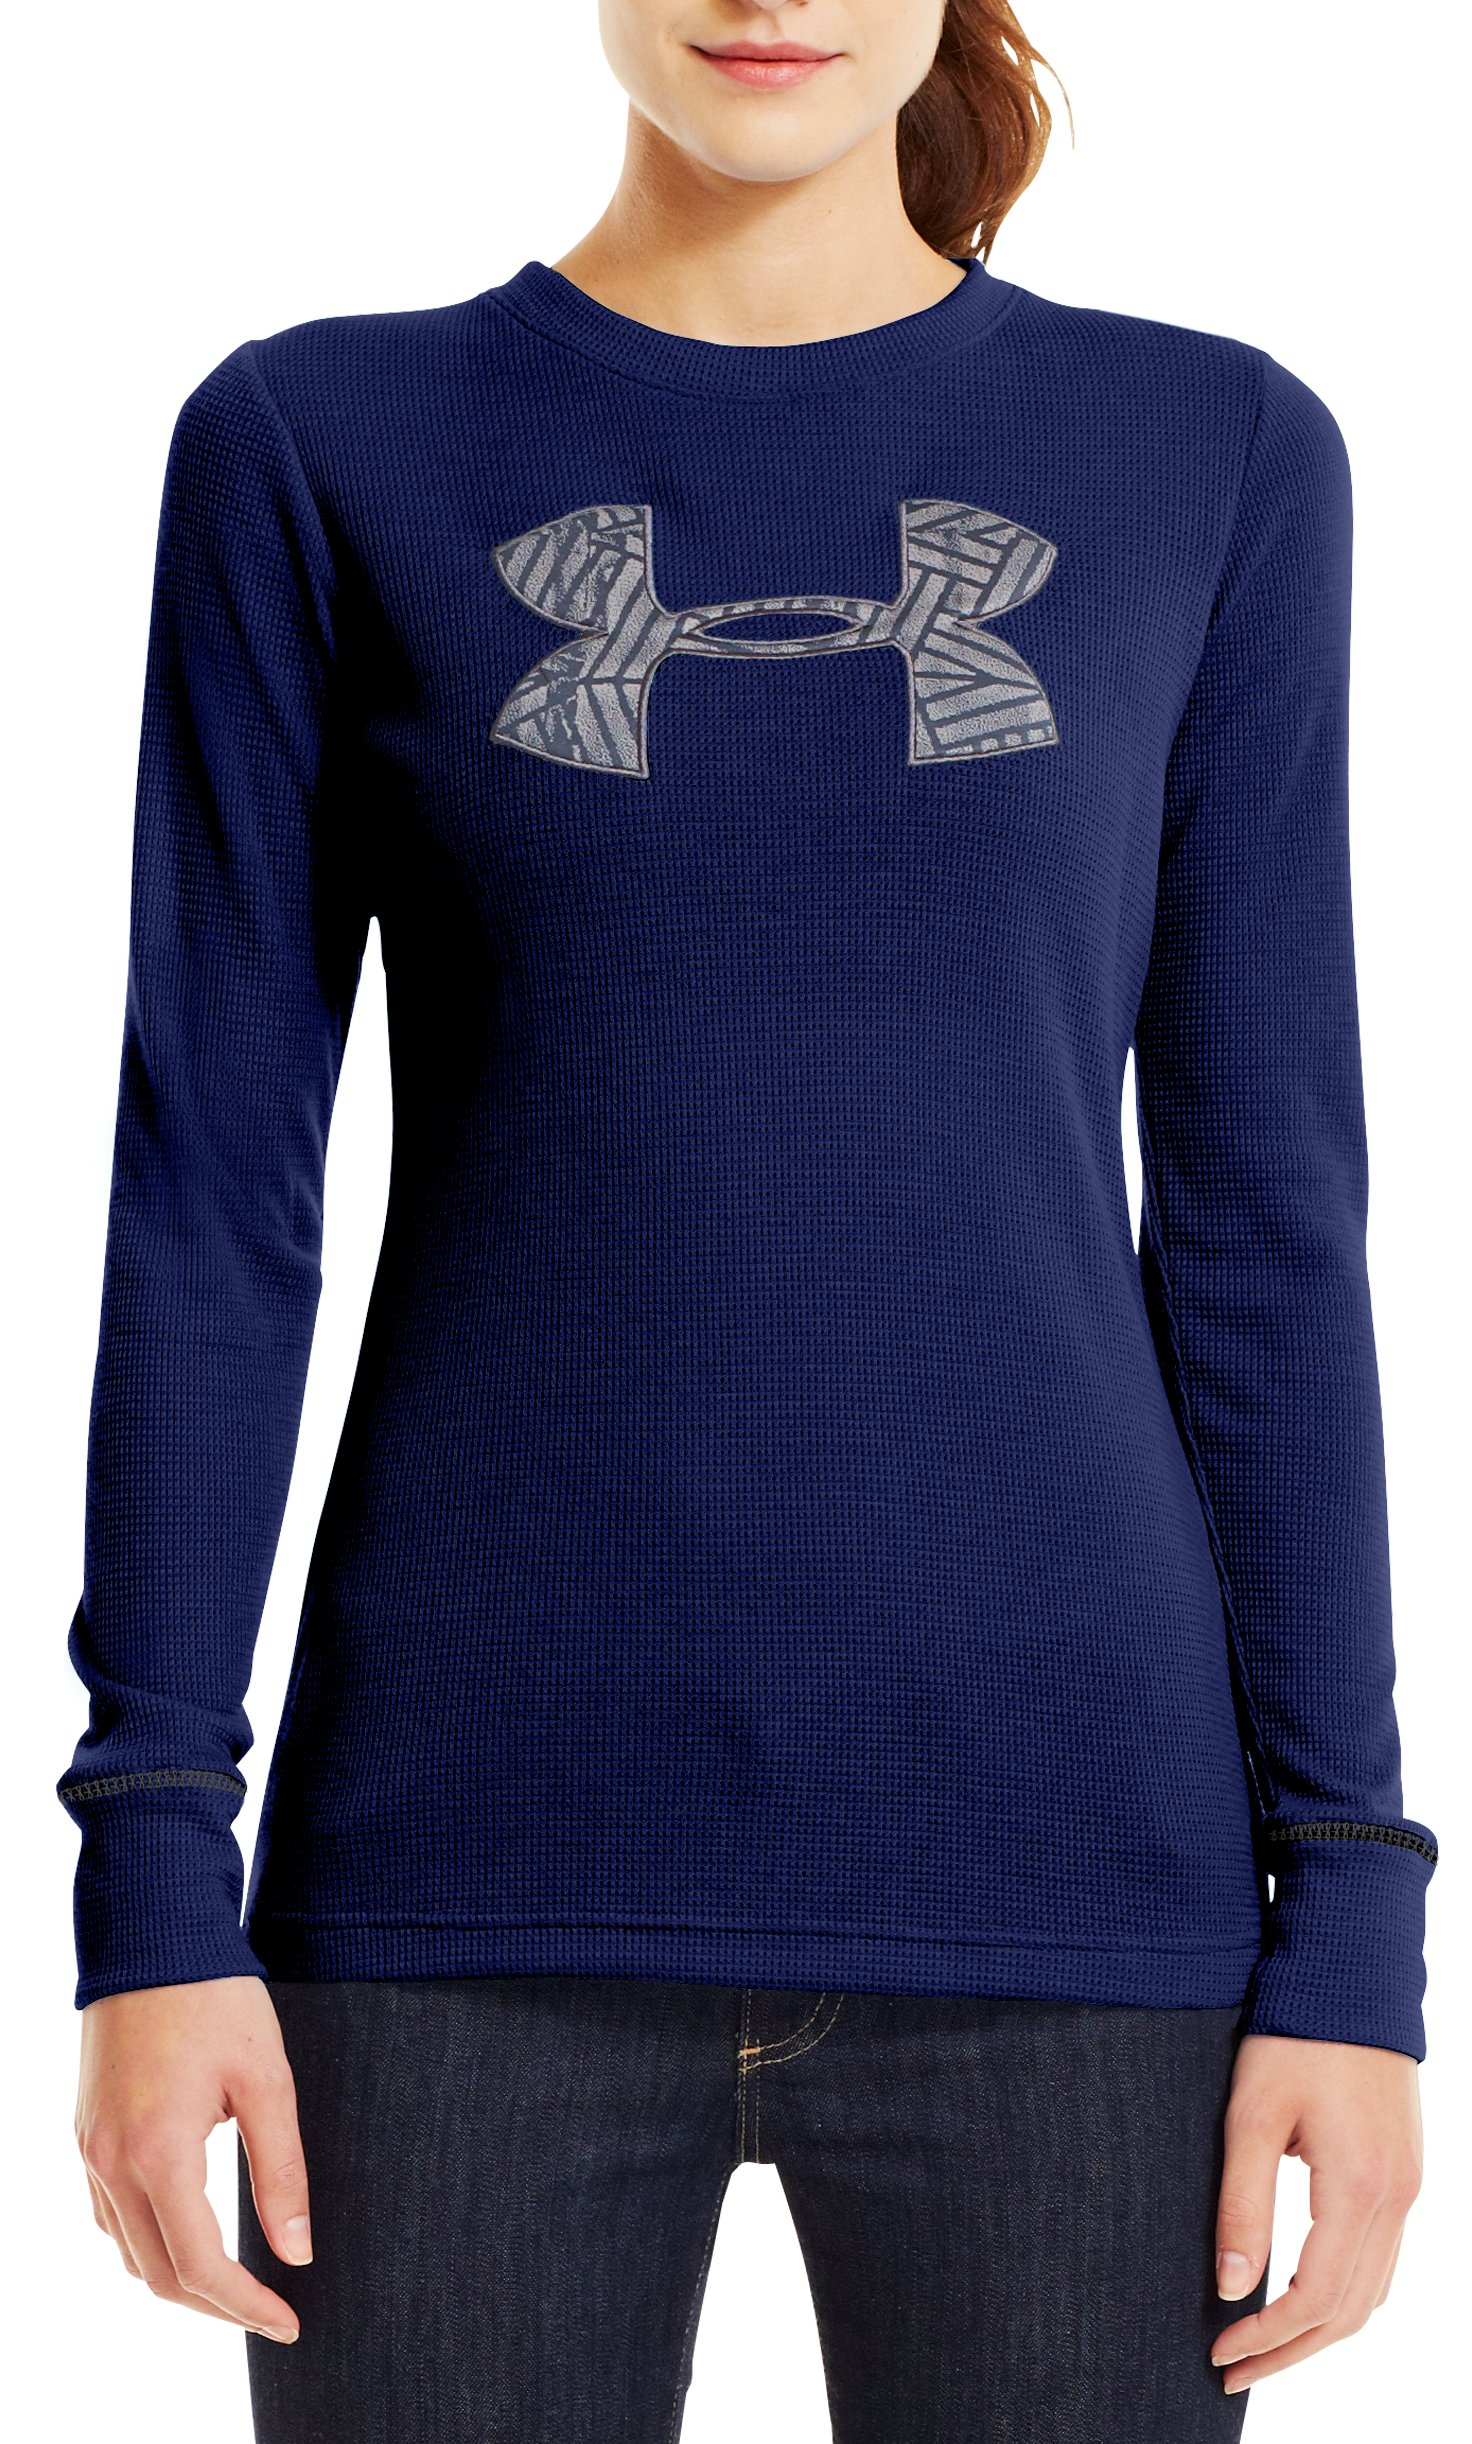 Women's Waffle Tackle Twill Long Sleeve Crew, REGAL, Front